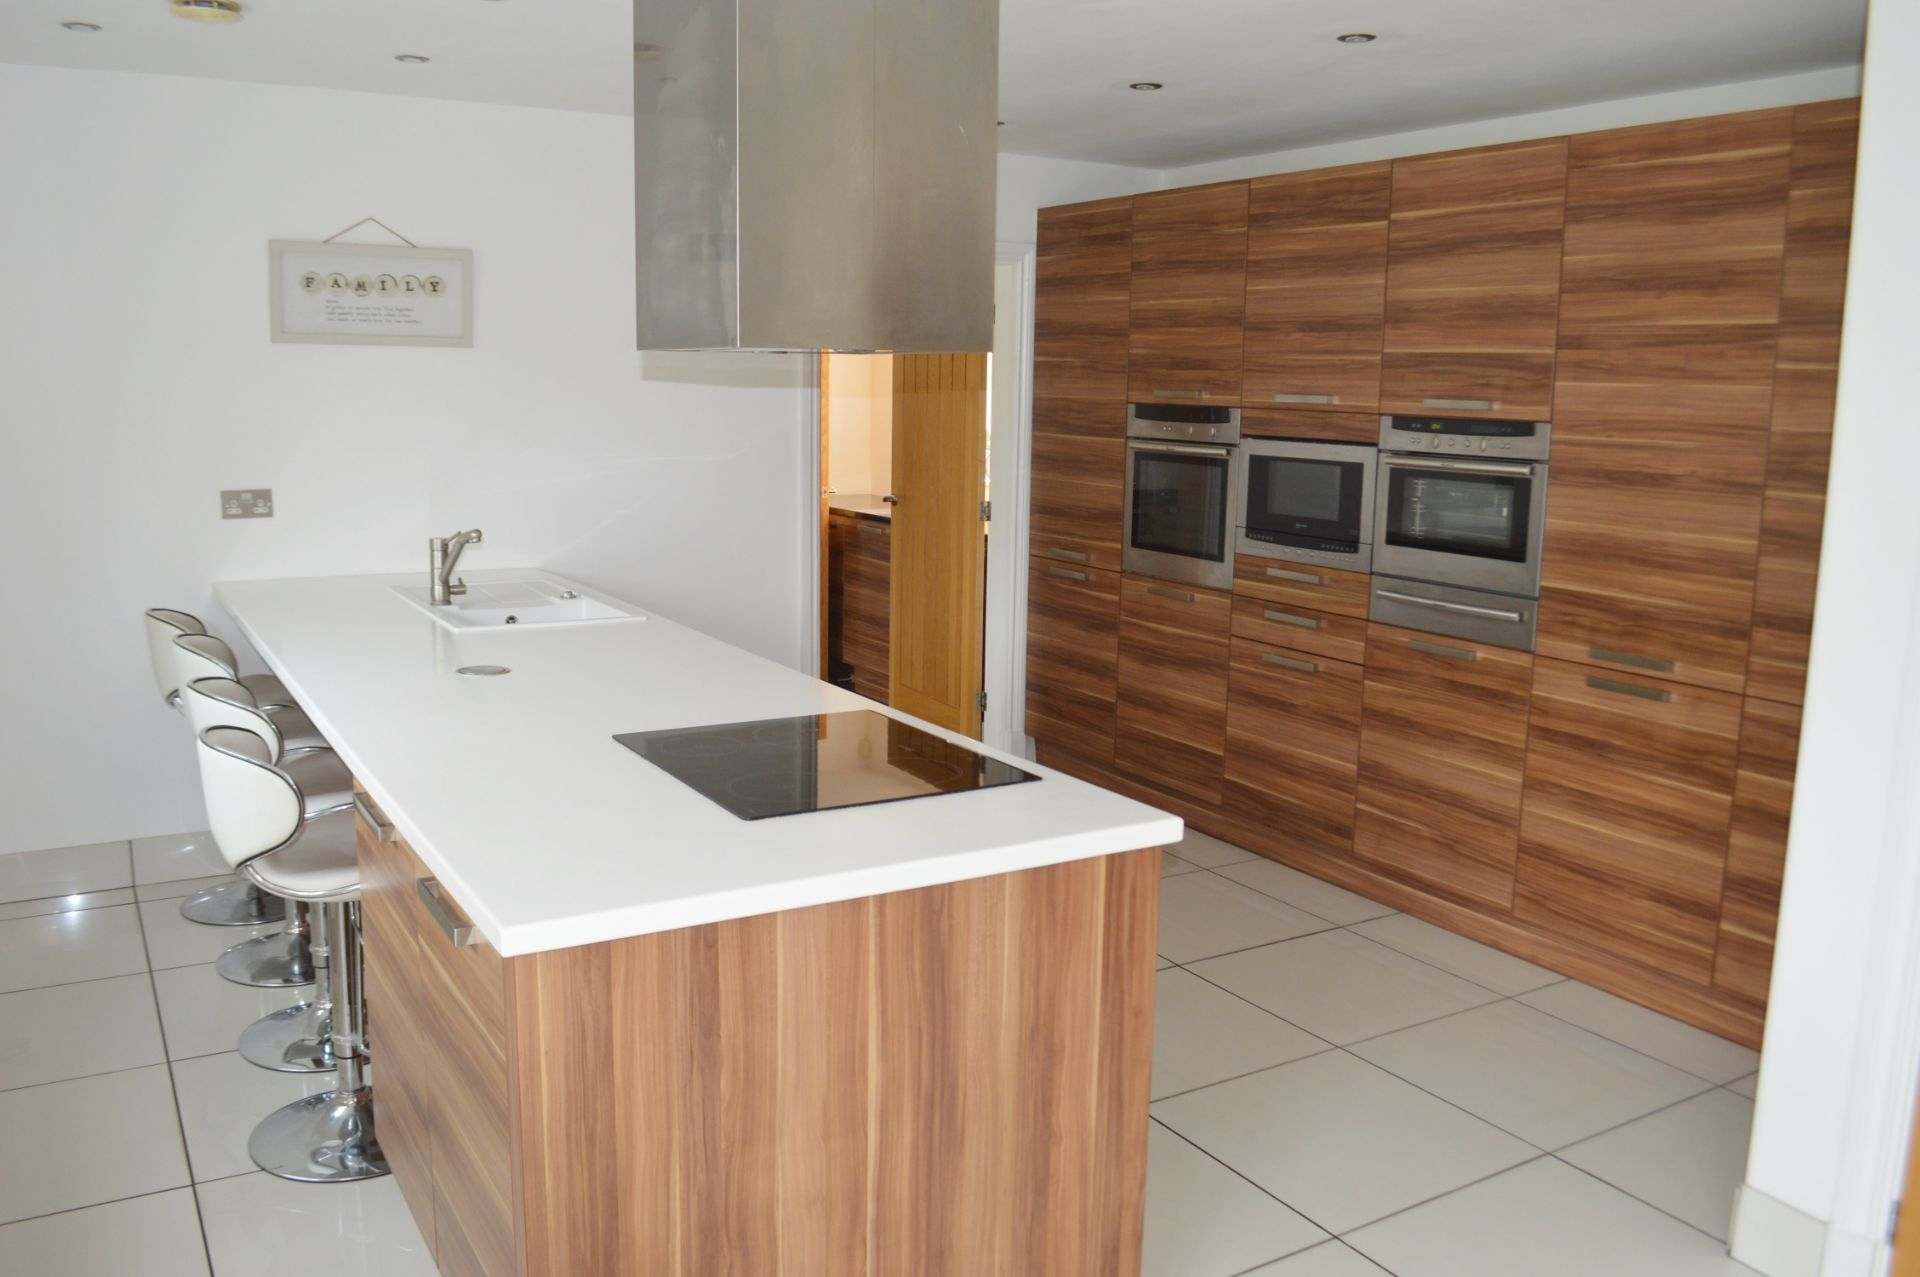 1 x Contemporary Bespoke Fitted Kitchen With Integrated Neff Branded Appliances, Quartz Worktops - Image 50 of 52